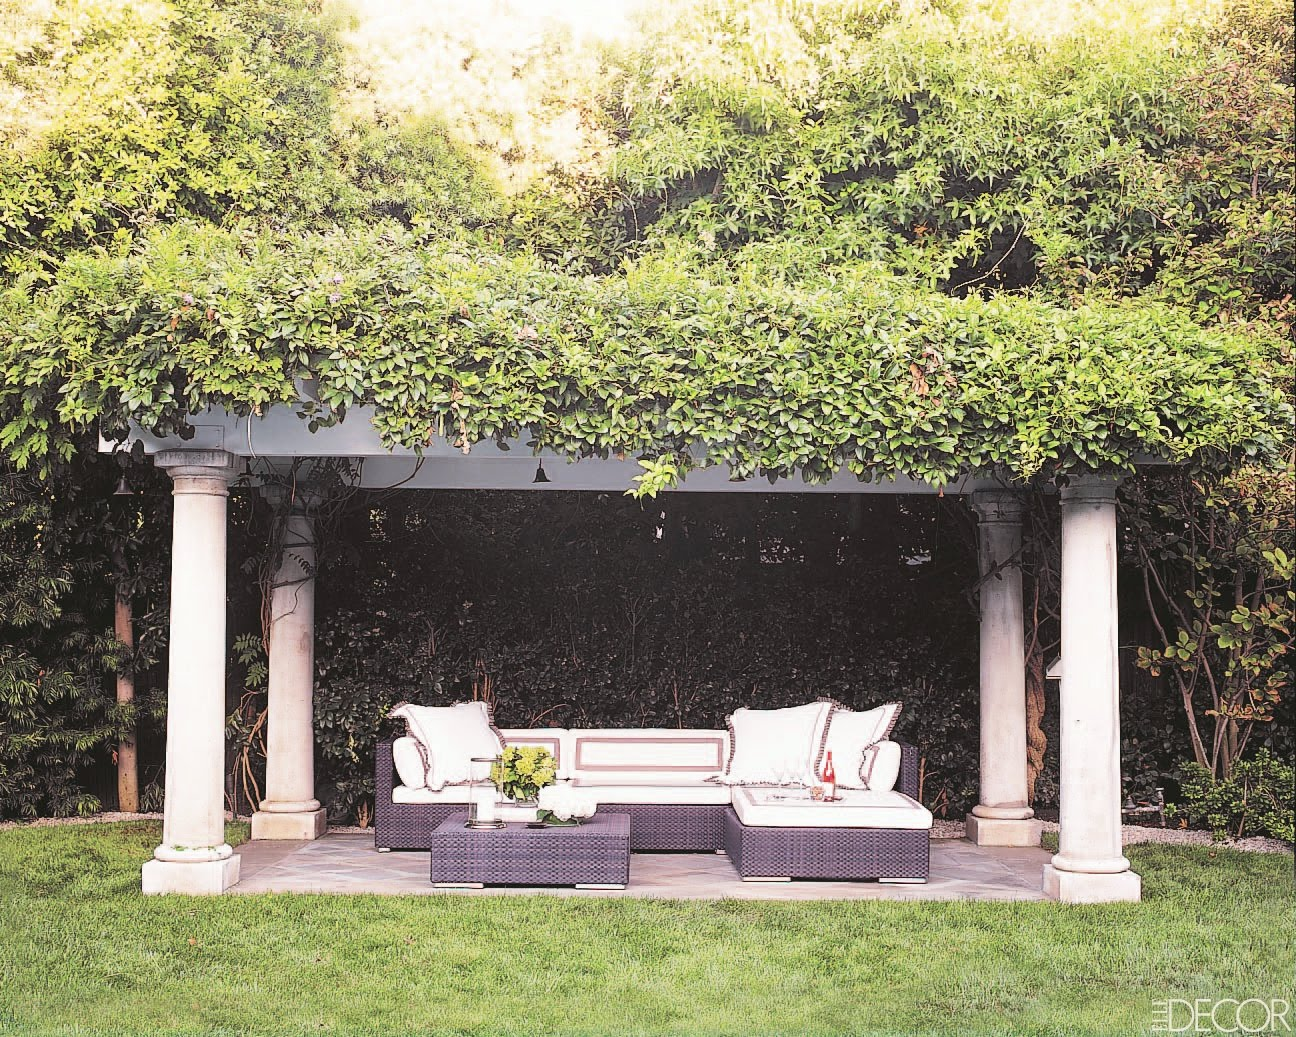 Romance In The Gardenu2026an Arbor Made Up Of Doric Columns And Lots Of  Vines With A